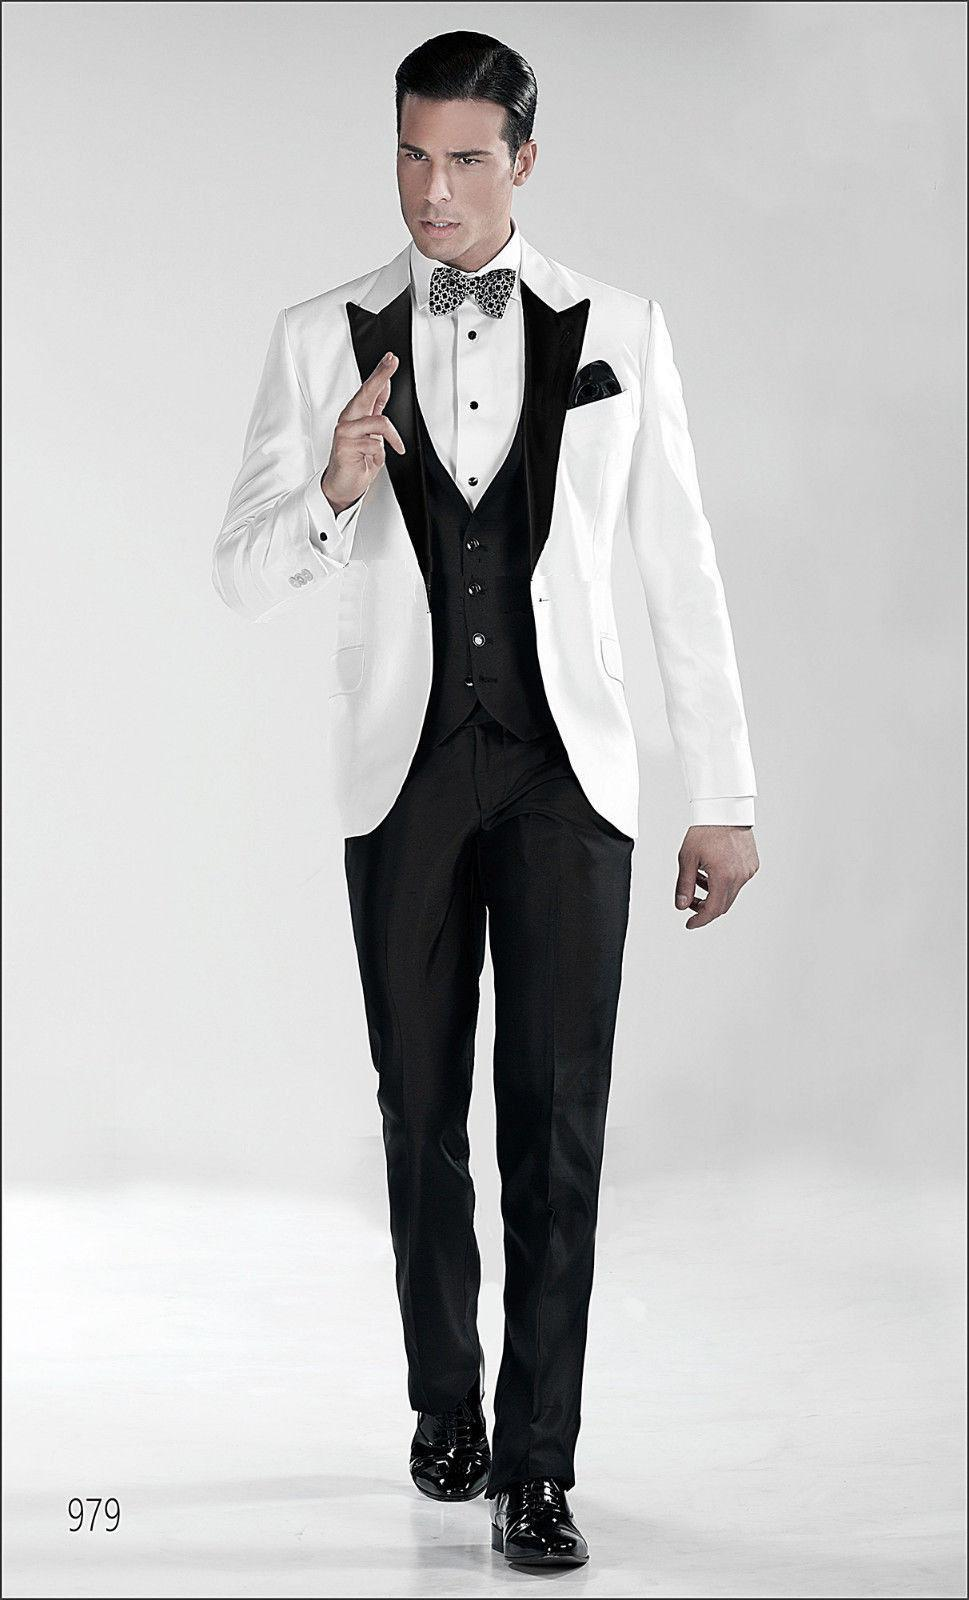 Wedding Groom Tuxedo the groom suits tuxedos men for wedding new fashion designer tuxedo dinner suit blazerjacketpantsvest men